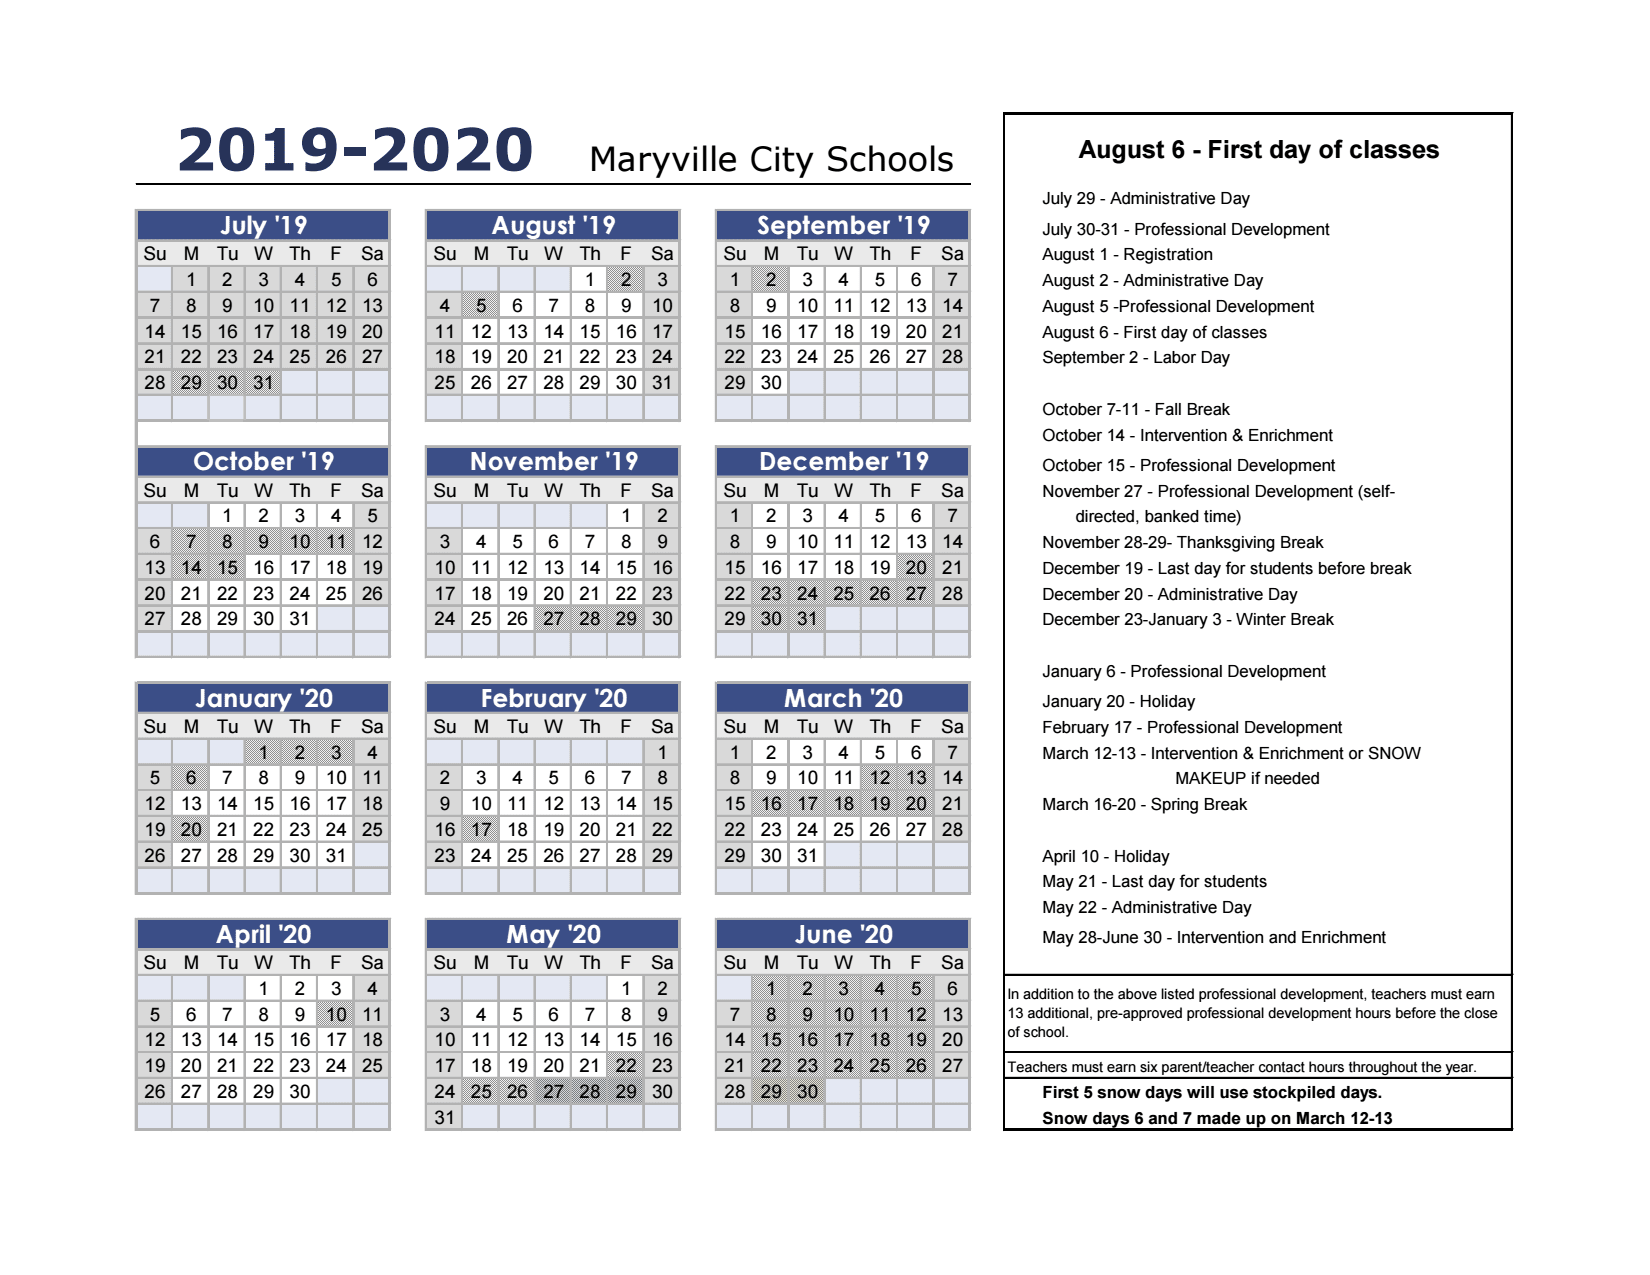 2020 Federal Pay Calendar 2019 20 Calendar (print ready)   Maryville City Schools